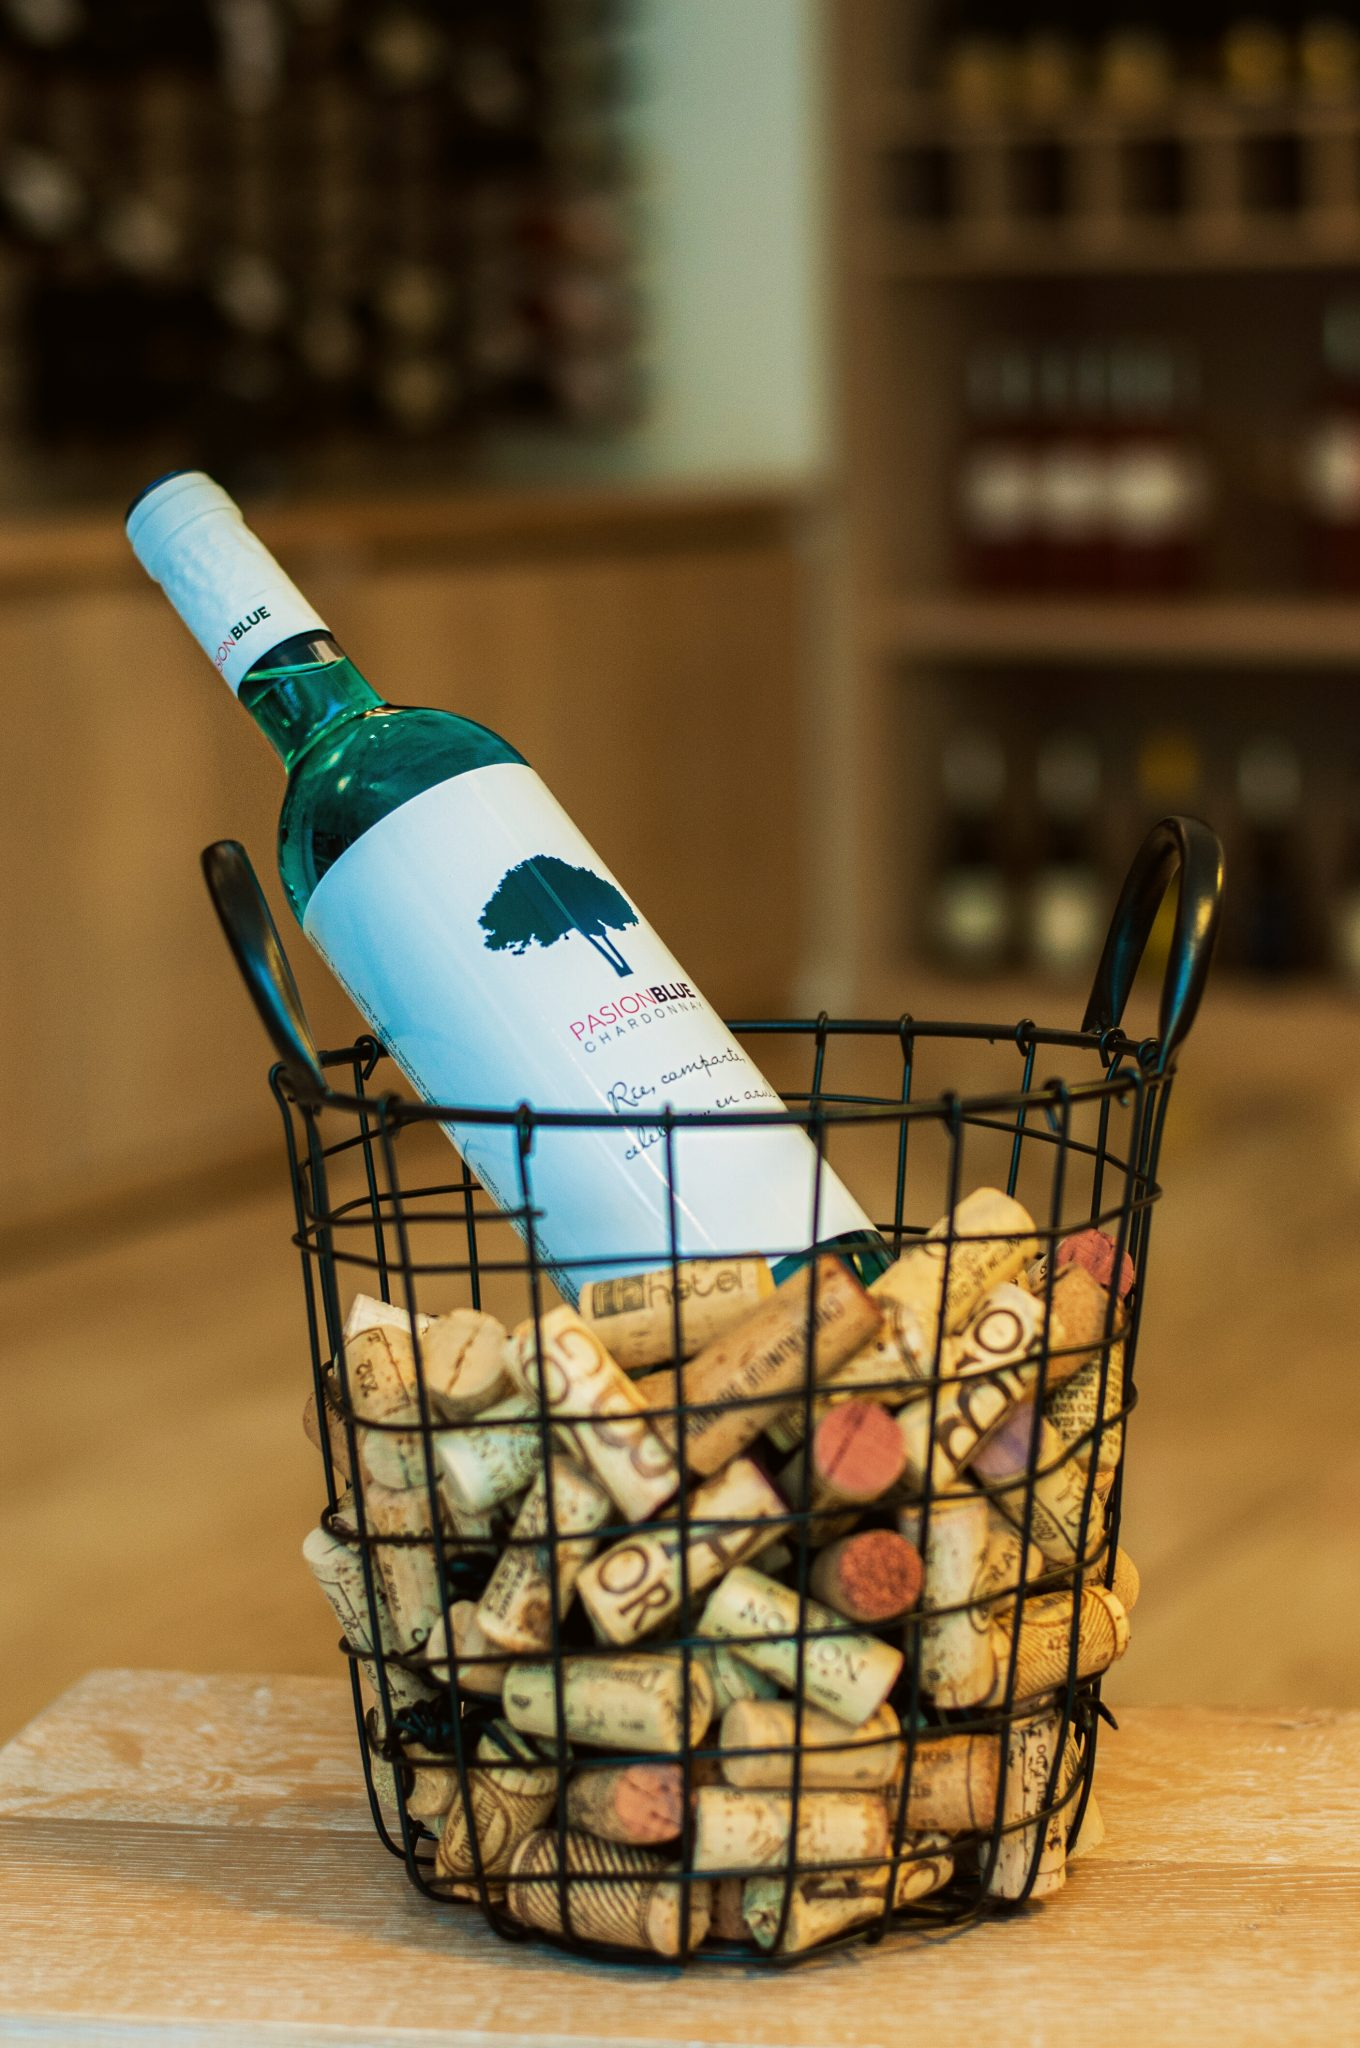 vin albastru, vin albastru de vanzare, vin albastru online, vinuri albastre online,vin albastru romania, pasion blue romania, vin albastru spania,vin albastru gik,vin gik pret,vin albastru comanda, pasion blue, vin albastru pasion blue, vin albastru passion blue, passion blue, online, gik online, vin cool, vinuri cool, vin chardonnay albastru, chardonnay albastru, vin antiocianinca, vin pigment antocianinca, vinuri albastre, vin spania, vinuri spania, bodegas, crama bodegas, vin bodegas, vinuri bodegas, chardonnay, noutate vin, noutati vin, noutate vinuri, noutati vinuri, 100% chardonnay, vin bun, vinuri bune, vin special, vinuri speciale, vin dulceag, vin demisec, vinuri demiseci, vin trendy, vinuri trendy, pasion blu, passion blu, vin albastru pret, vin albastru romania, vin albastru comanda, vin gik pret, gik romania, gik comanda, blue wine, blue wines, pasion blue wine, pasion blue wines, passion blue wine, vin pigment indigo, vin bleu, vinuri bleu, pasion bleu, gik blew, gik live, marturie nunta, marturii nunta, marturii nunti, marturii nunta online, marturie nunta online, marturie vin, marturii vin, marturie cadou online, marturii cadou online, marturie magazin online, marturii magazin online, vin personalizat, sticla vin personalizata, sticle vin personalizate, vin cadou personalizat, vinuri cadou personalizate, vinuri cu sentimente, vin cadou, mesaj personalizat, cadou personalizat, eticheta cu sentimente, cadou inedit, cadou online, vin cadou online, vinuri cadou online, wine gift, etichete personalizate, pret vin personalizat, preturi vinuri personalizate, vin personalizat, vinuri personalizate, personalizare vinuri nunta, cadouri personalizate, personalizare marturii nunta, marturii nunta personalizate, cadouri online, vin pentru cadou, vinuri pentru cadouri, magazin online vinuri, pachete vinuri cadou, eticheta cu sentimente, sticla vin, cadou iubit, cadou iubita, cadouri iubit, cadouri iubita, cadou prieten, cadou prieteni, cadouri prieten, cadouri prie